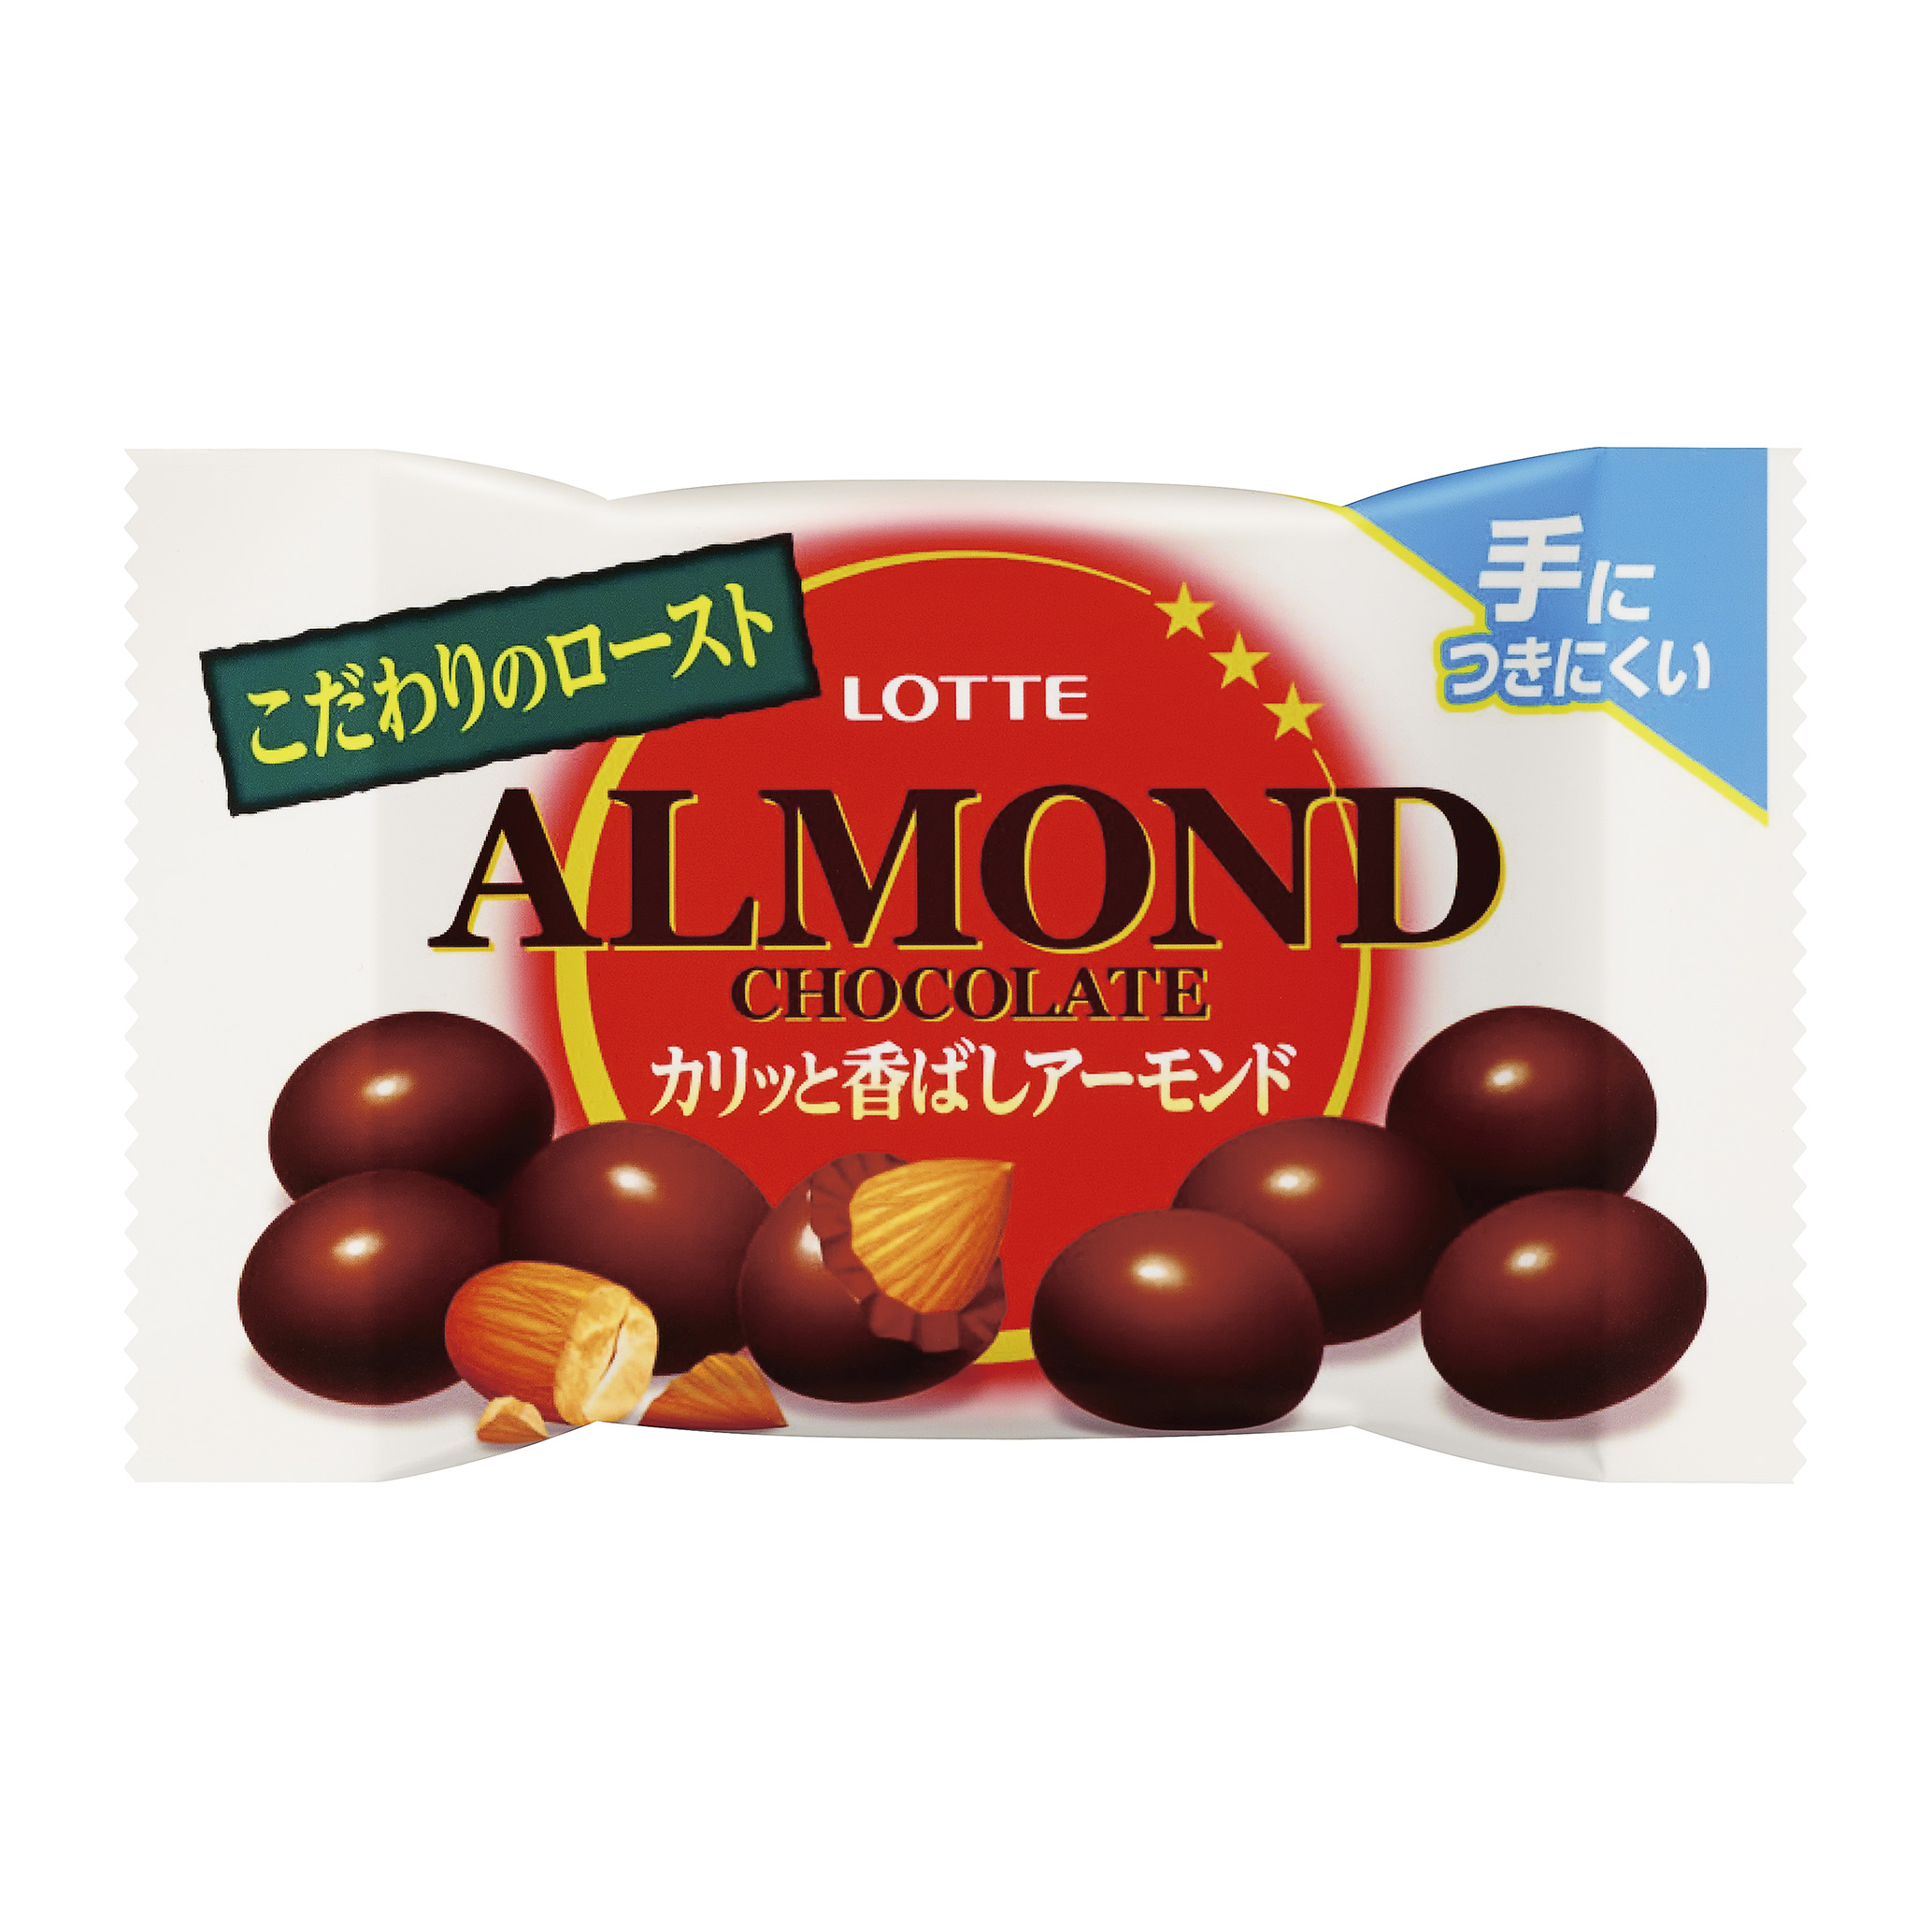 Миндаль в молочном шоколаде, Almond Chocolate Pop Joy, Lotte